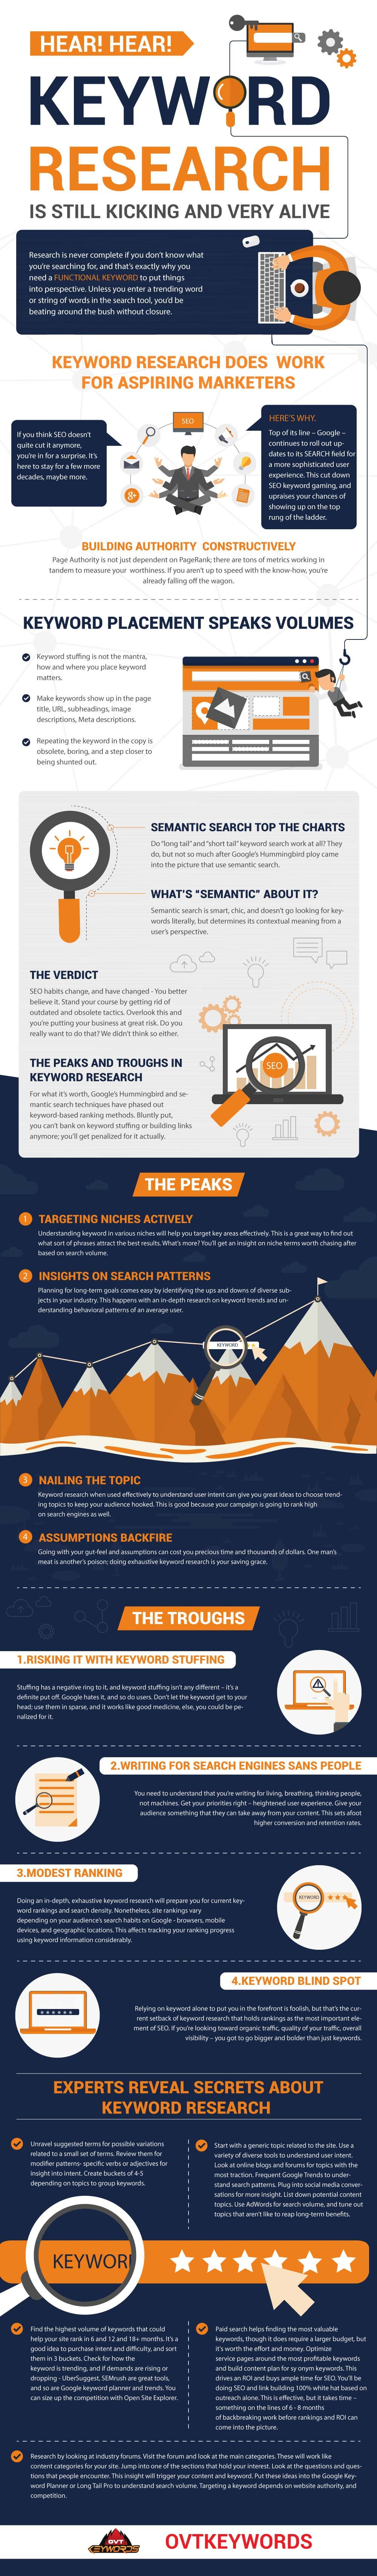 Importance of Keyword Research Infographic